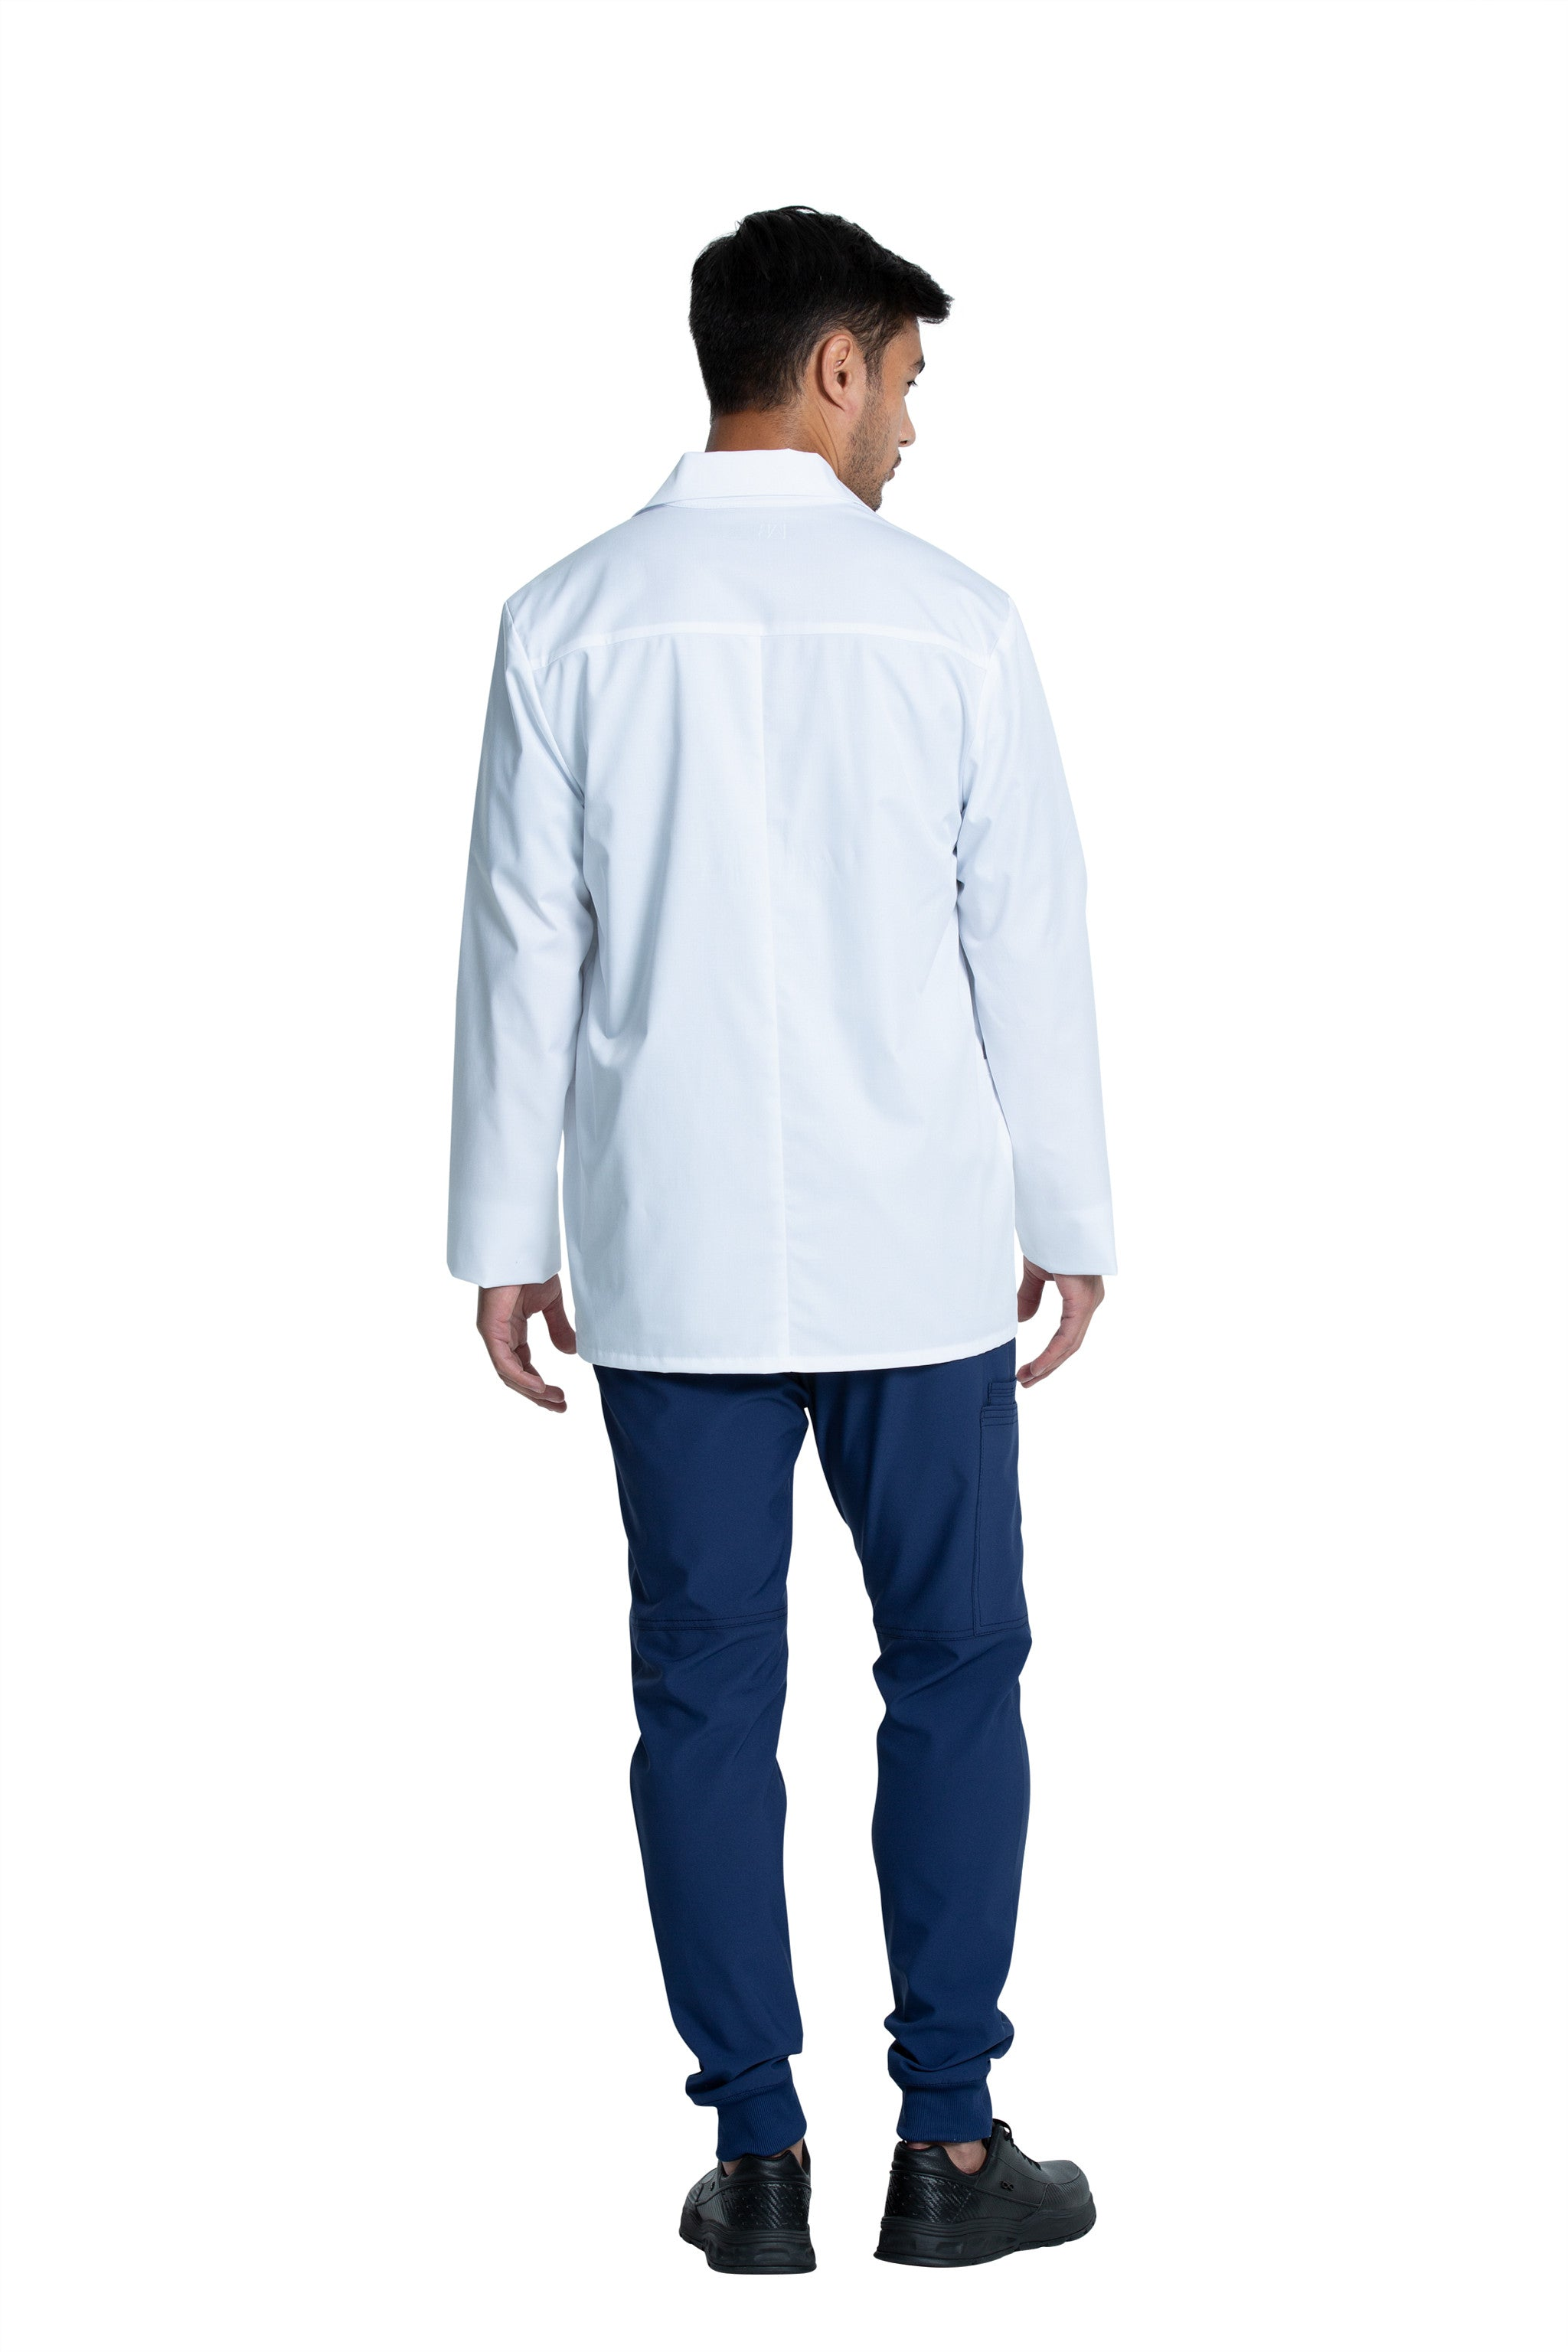 "White - Project Lab by Cherokee 30"" Men's Consultation Coat"